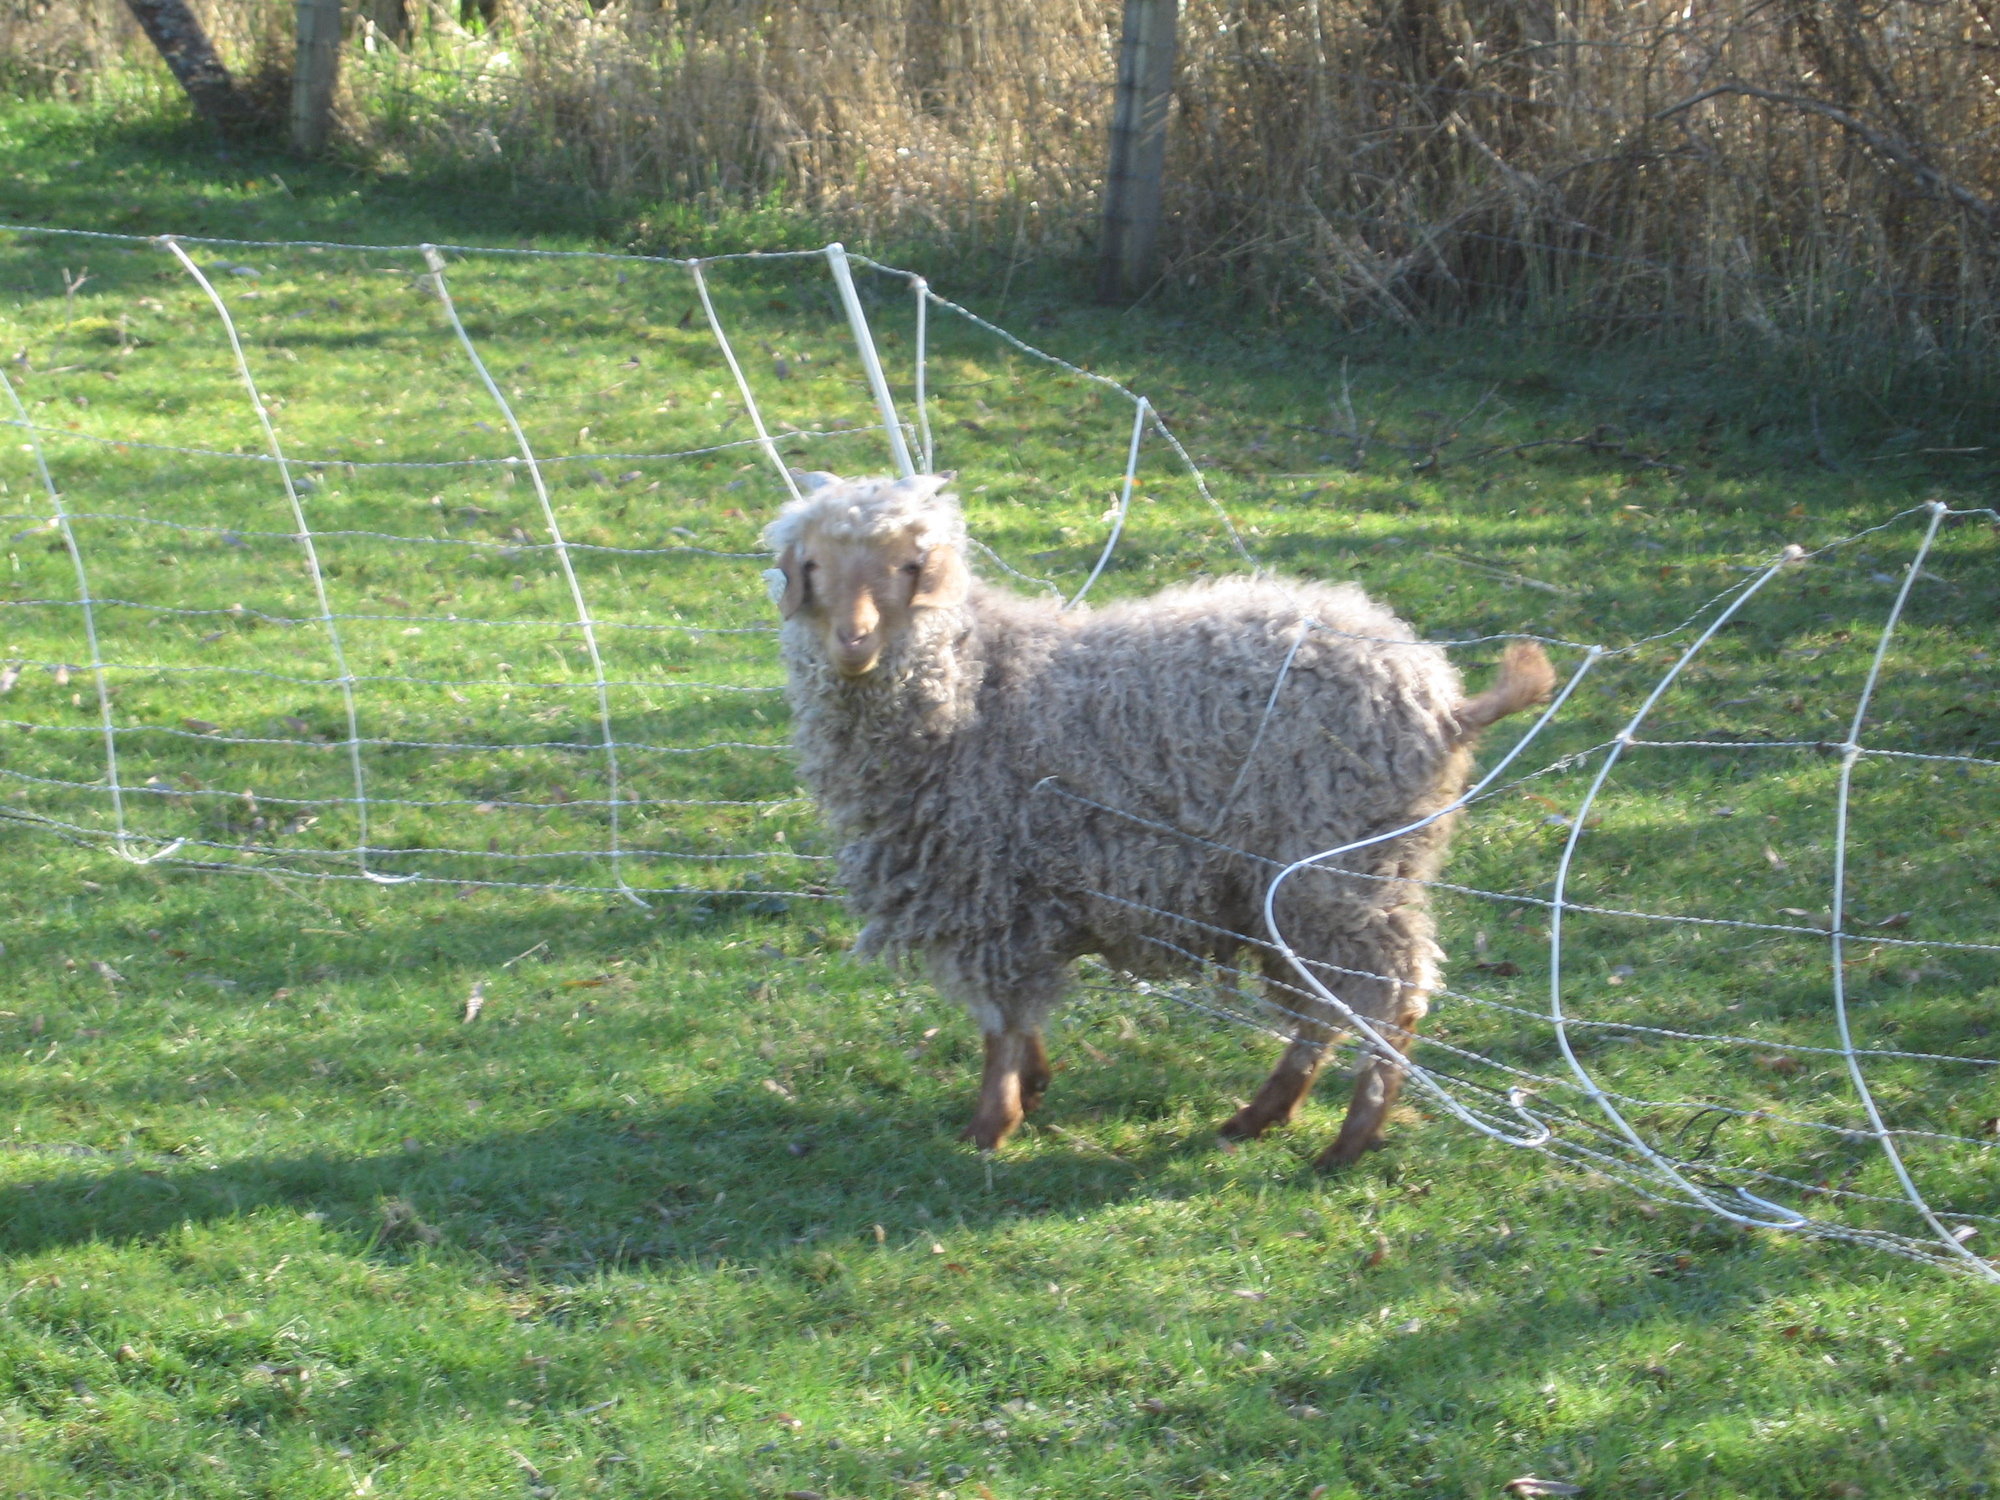 Fencing And Woolly Sheep Schoonover Farm Blog